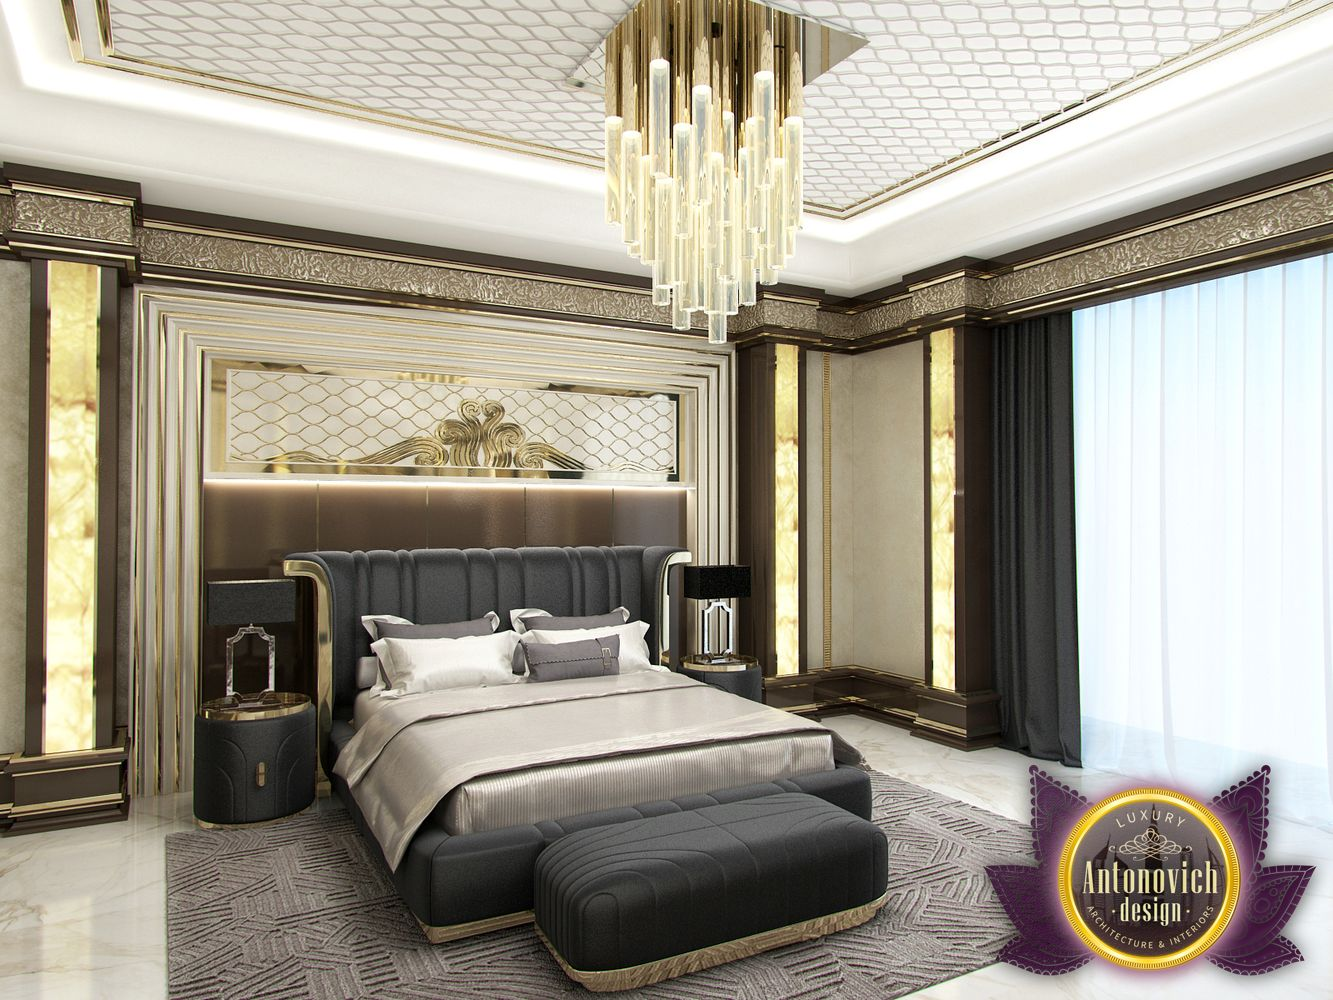 Luxury antonovich design uae master bedroom in modern for 5 bedroom house interior design